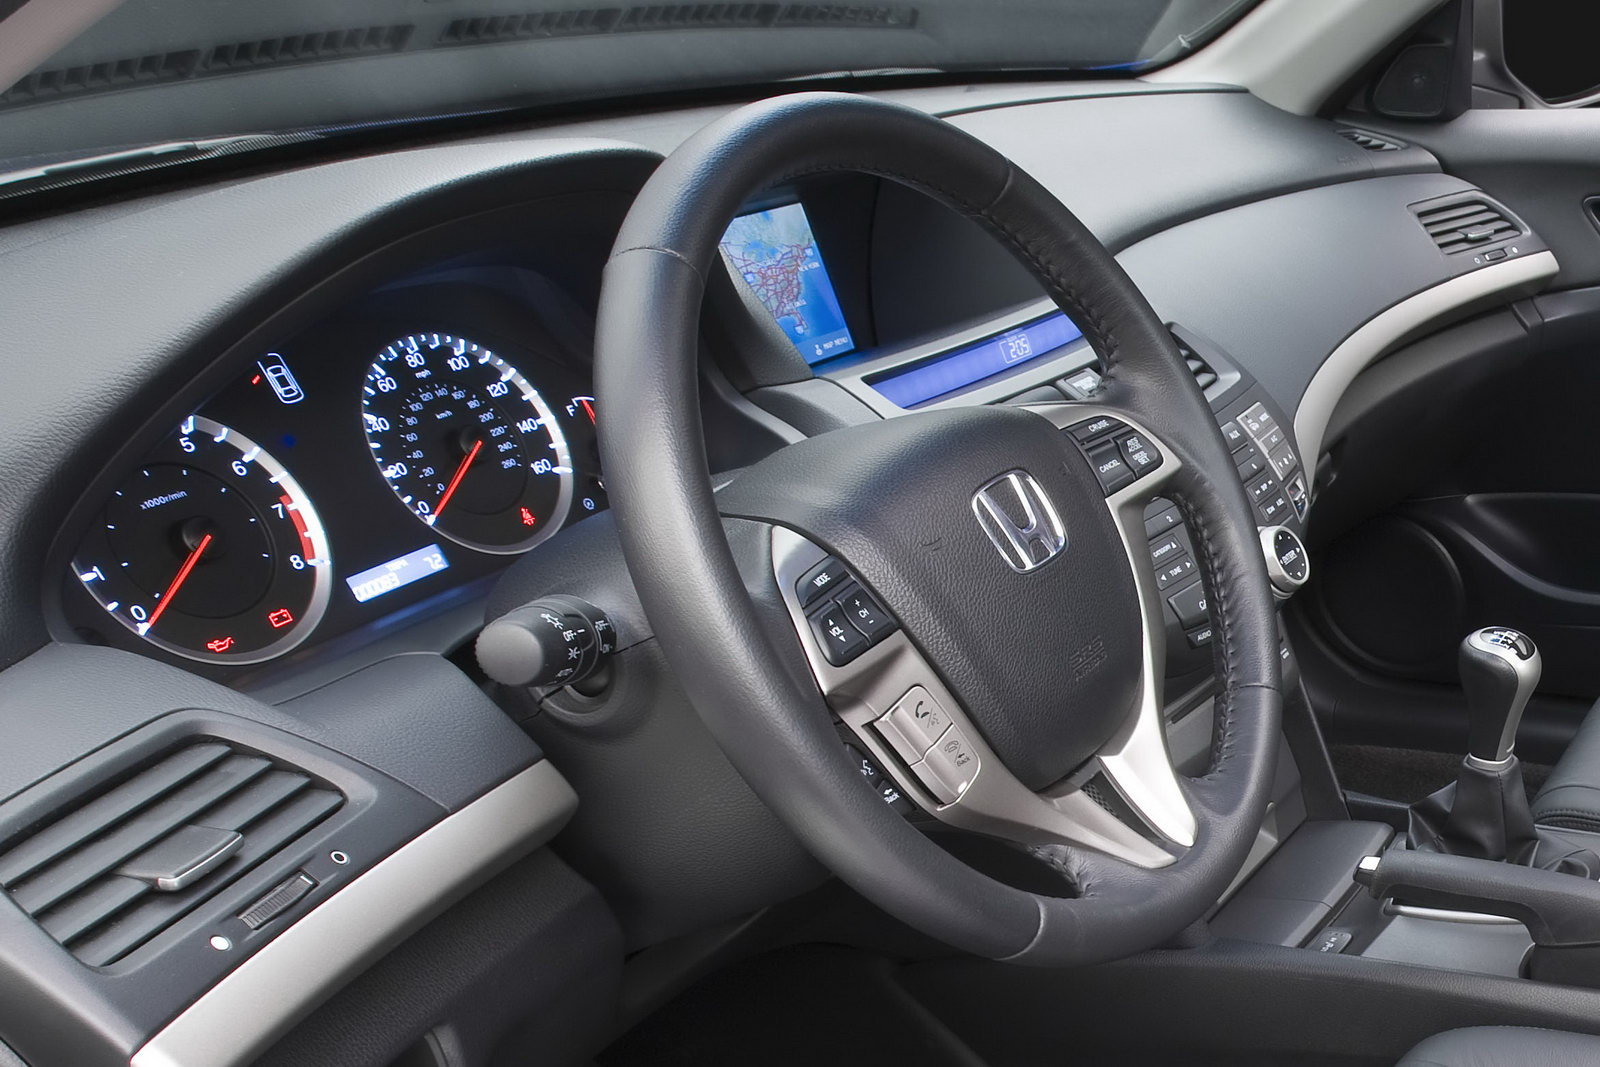 2011 honda accord sedan and coupe facelift first photos and details rh inspiration car sport blogspot com 2012 honda accord manual pdf 2011 honda accord manual pdf